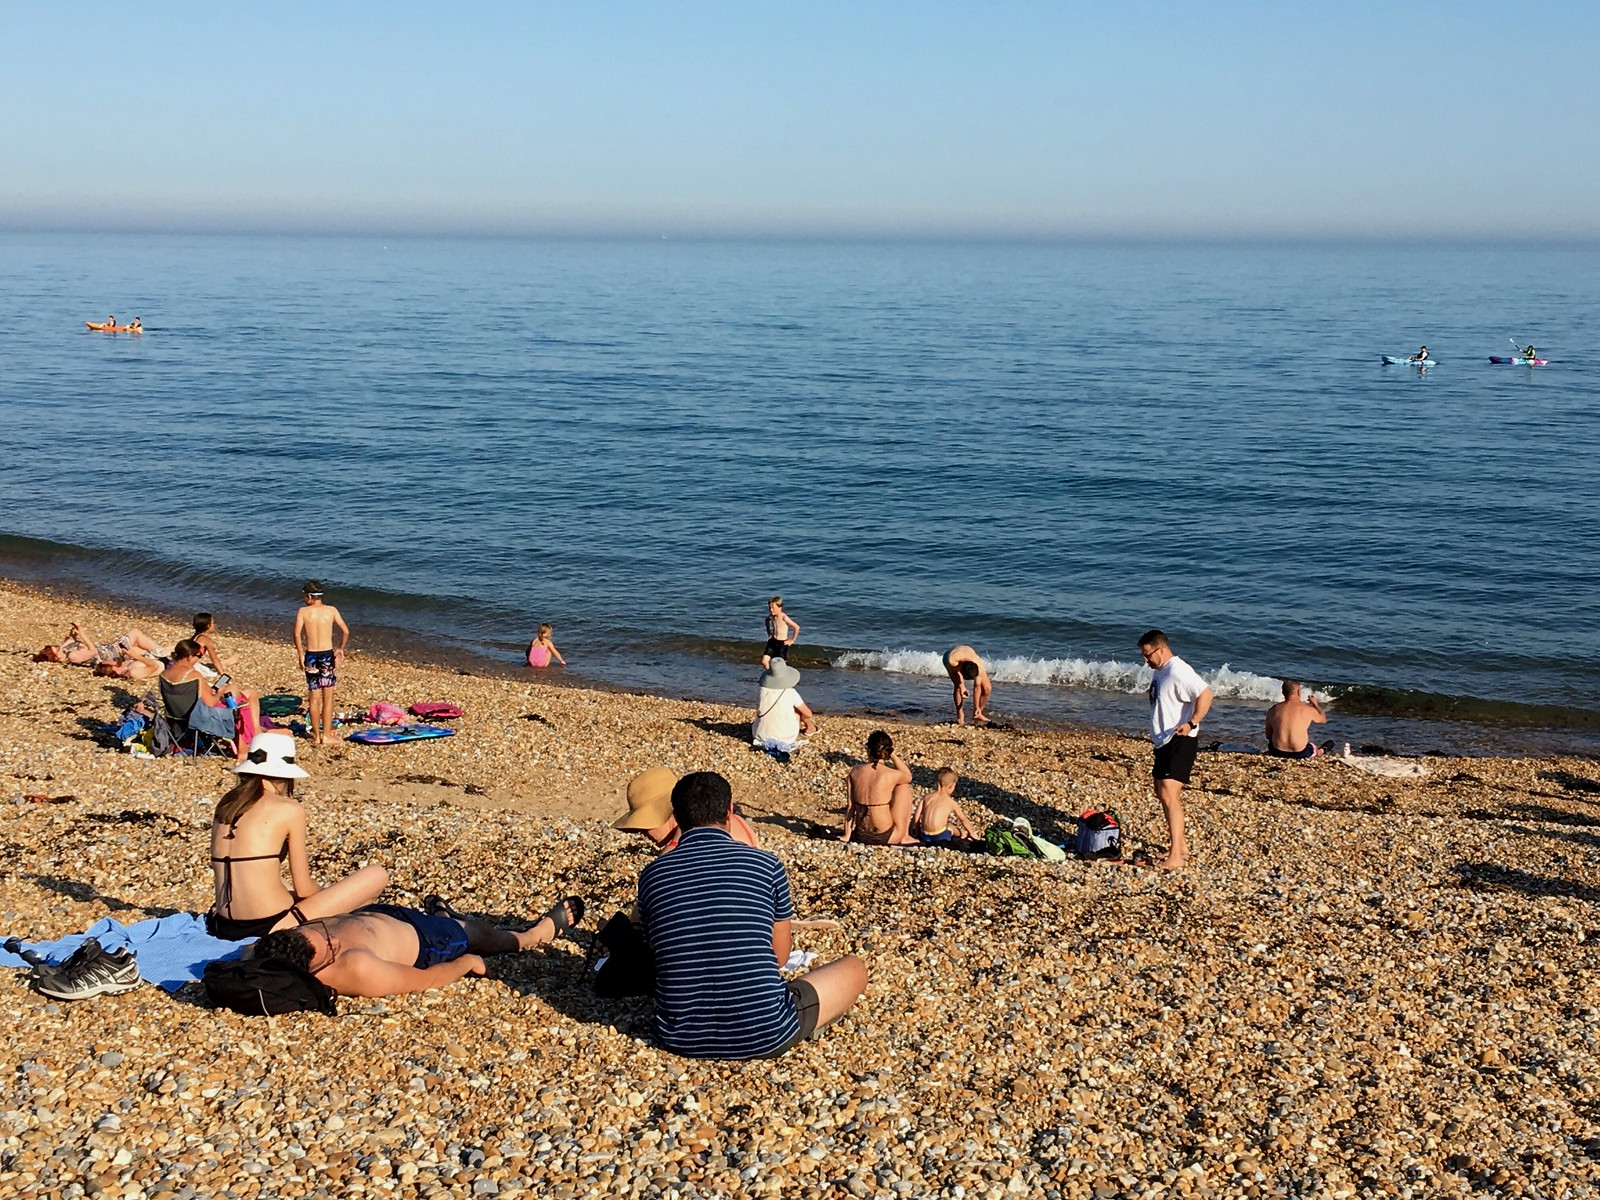 August 25, 2019: Berwick to Eastbourne Eastbourne beach